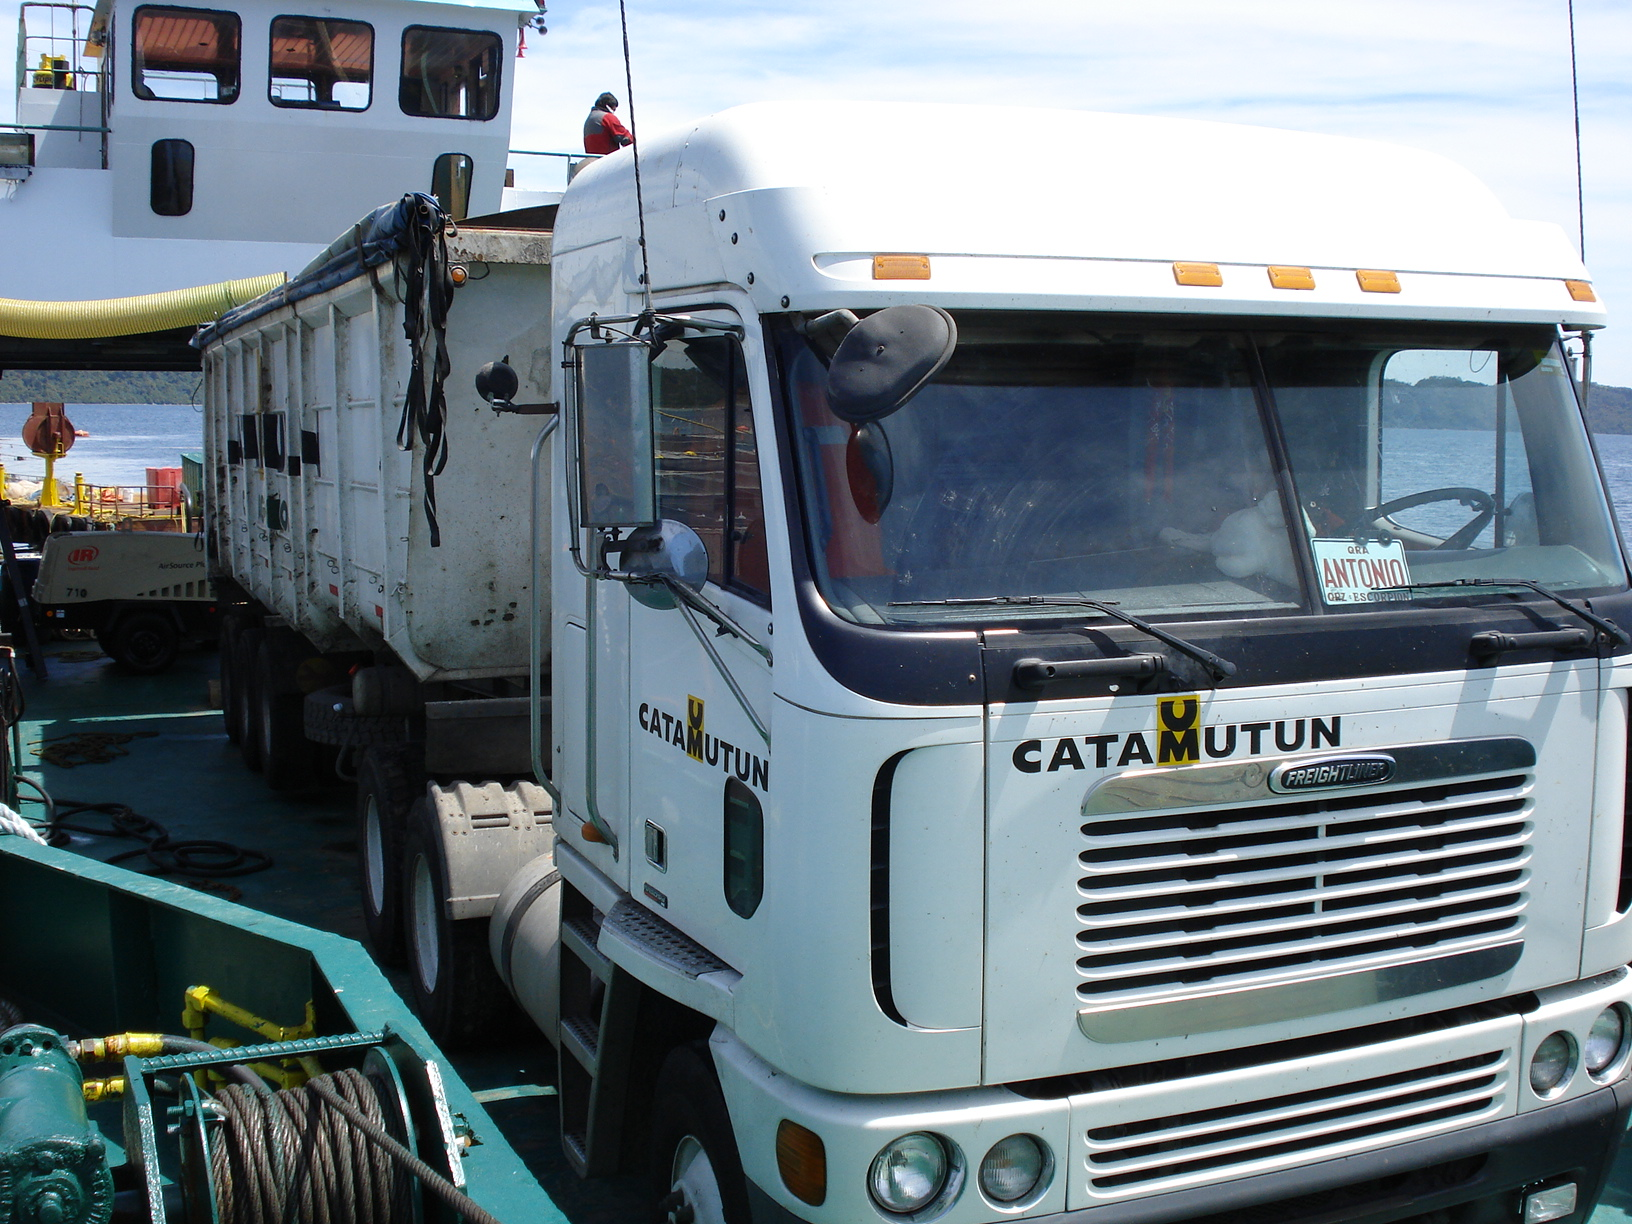 camion_11